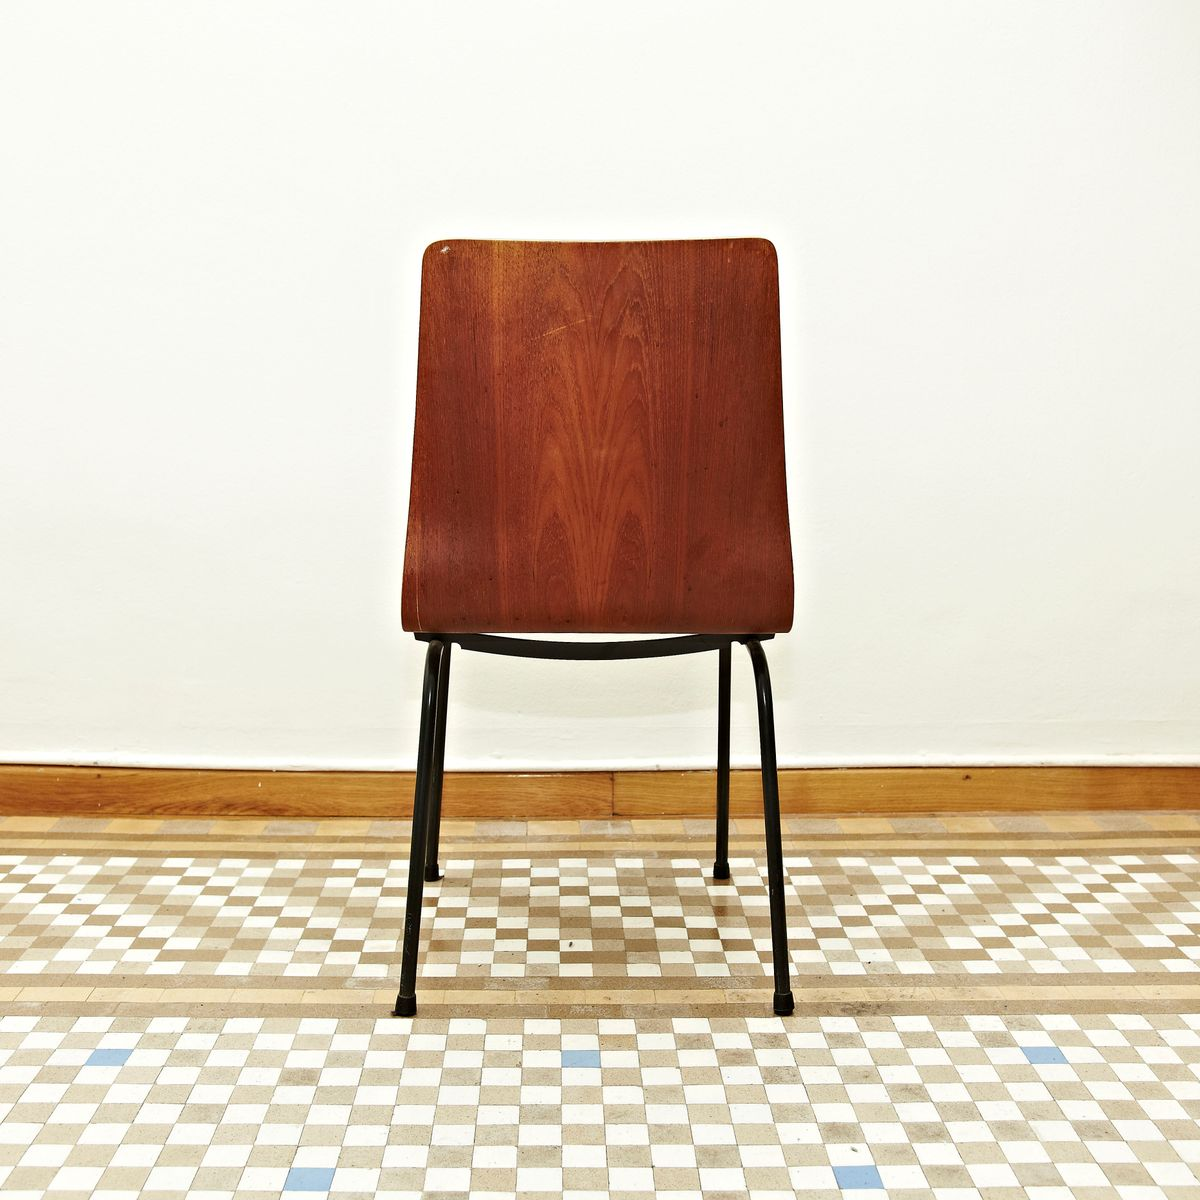 Plywood chair by friso kramer for auping for sale at pamono